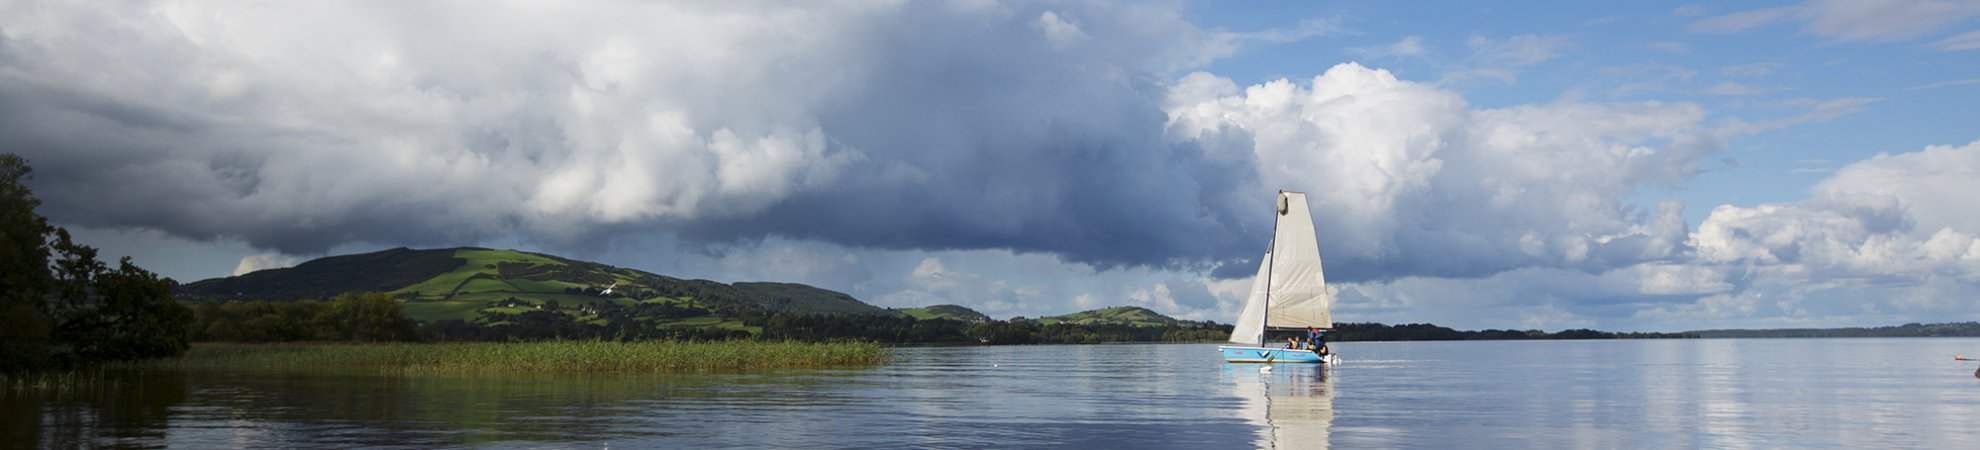 Lough Derg Blueway